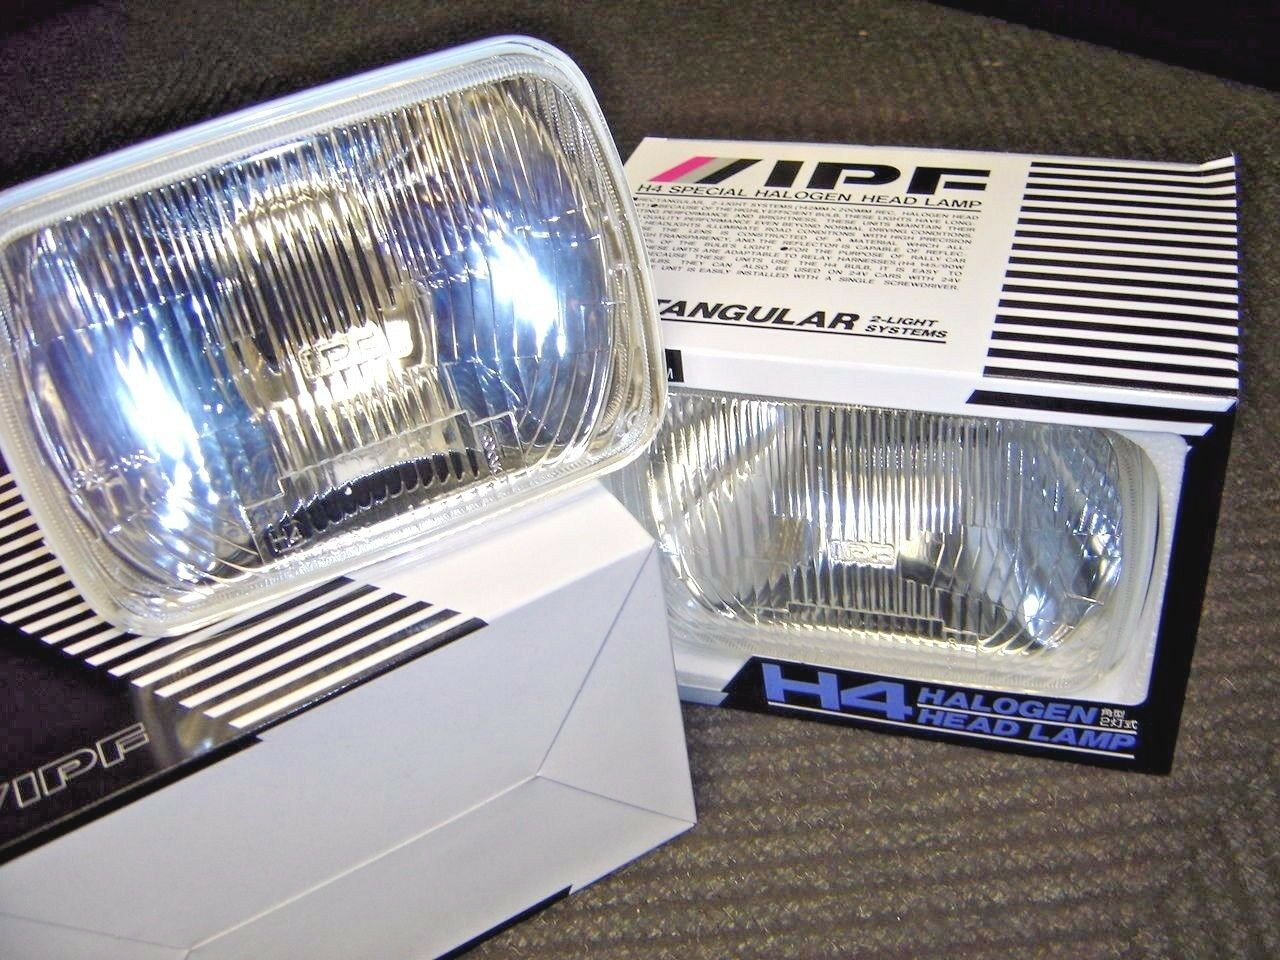 YOU ARE BIDDING ON A BRAND NEW PAIR OF IPF H4 CONVERSION HEADLIGHTS.    THESE ARE THE GLASS HOUSINGS THAT YOU WOULD NEED  IN ORDER TO RUN H4 HEAD LIGHT BULBS.    THESE ARE NEW.  THESE COME WITH OUT BULBS BUT YOU CAN FIND H4 BULBS ALMOST ANYWHERE.     THIS WILL FIT YOUR AE86 FROM 84-87   YOUR MR2 FROM 85-93 SW20 AND AW11   AS WELL AS CELICA SUPRA FROM 82-92 RA64 RA65 MA60 MA70  PICK UP TRUCKS      THESE ARE FOR OFF ROAD USE ONLY